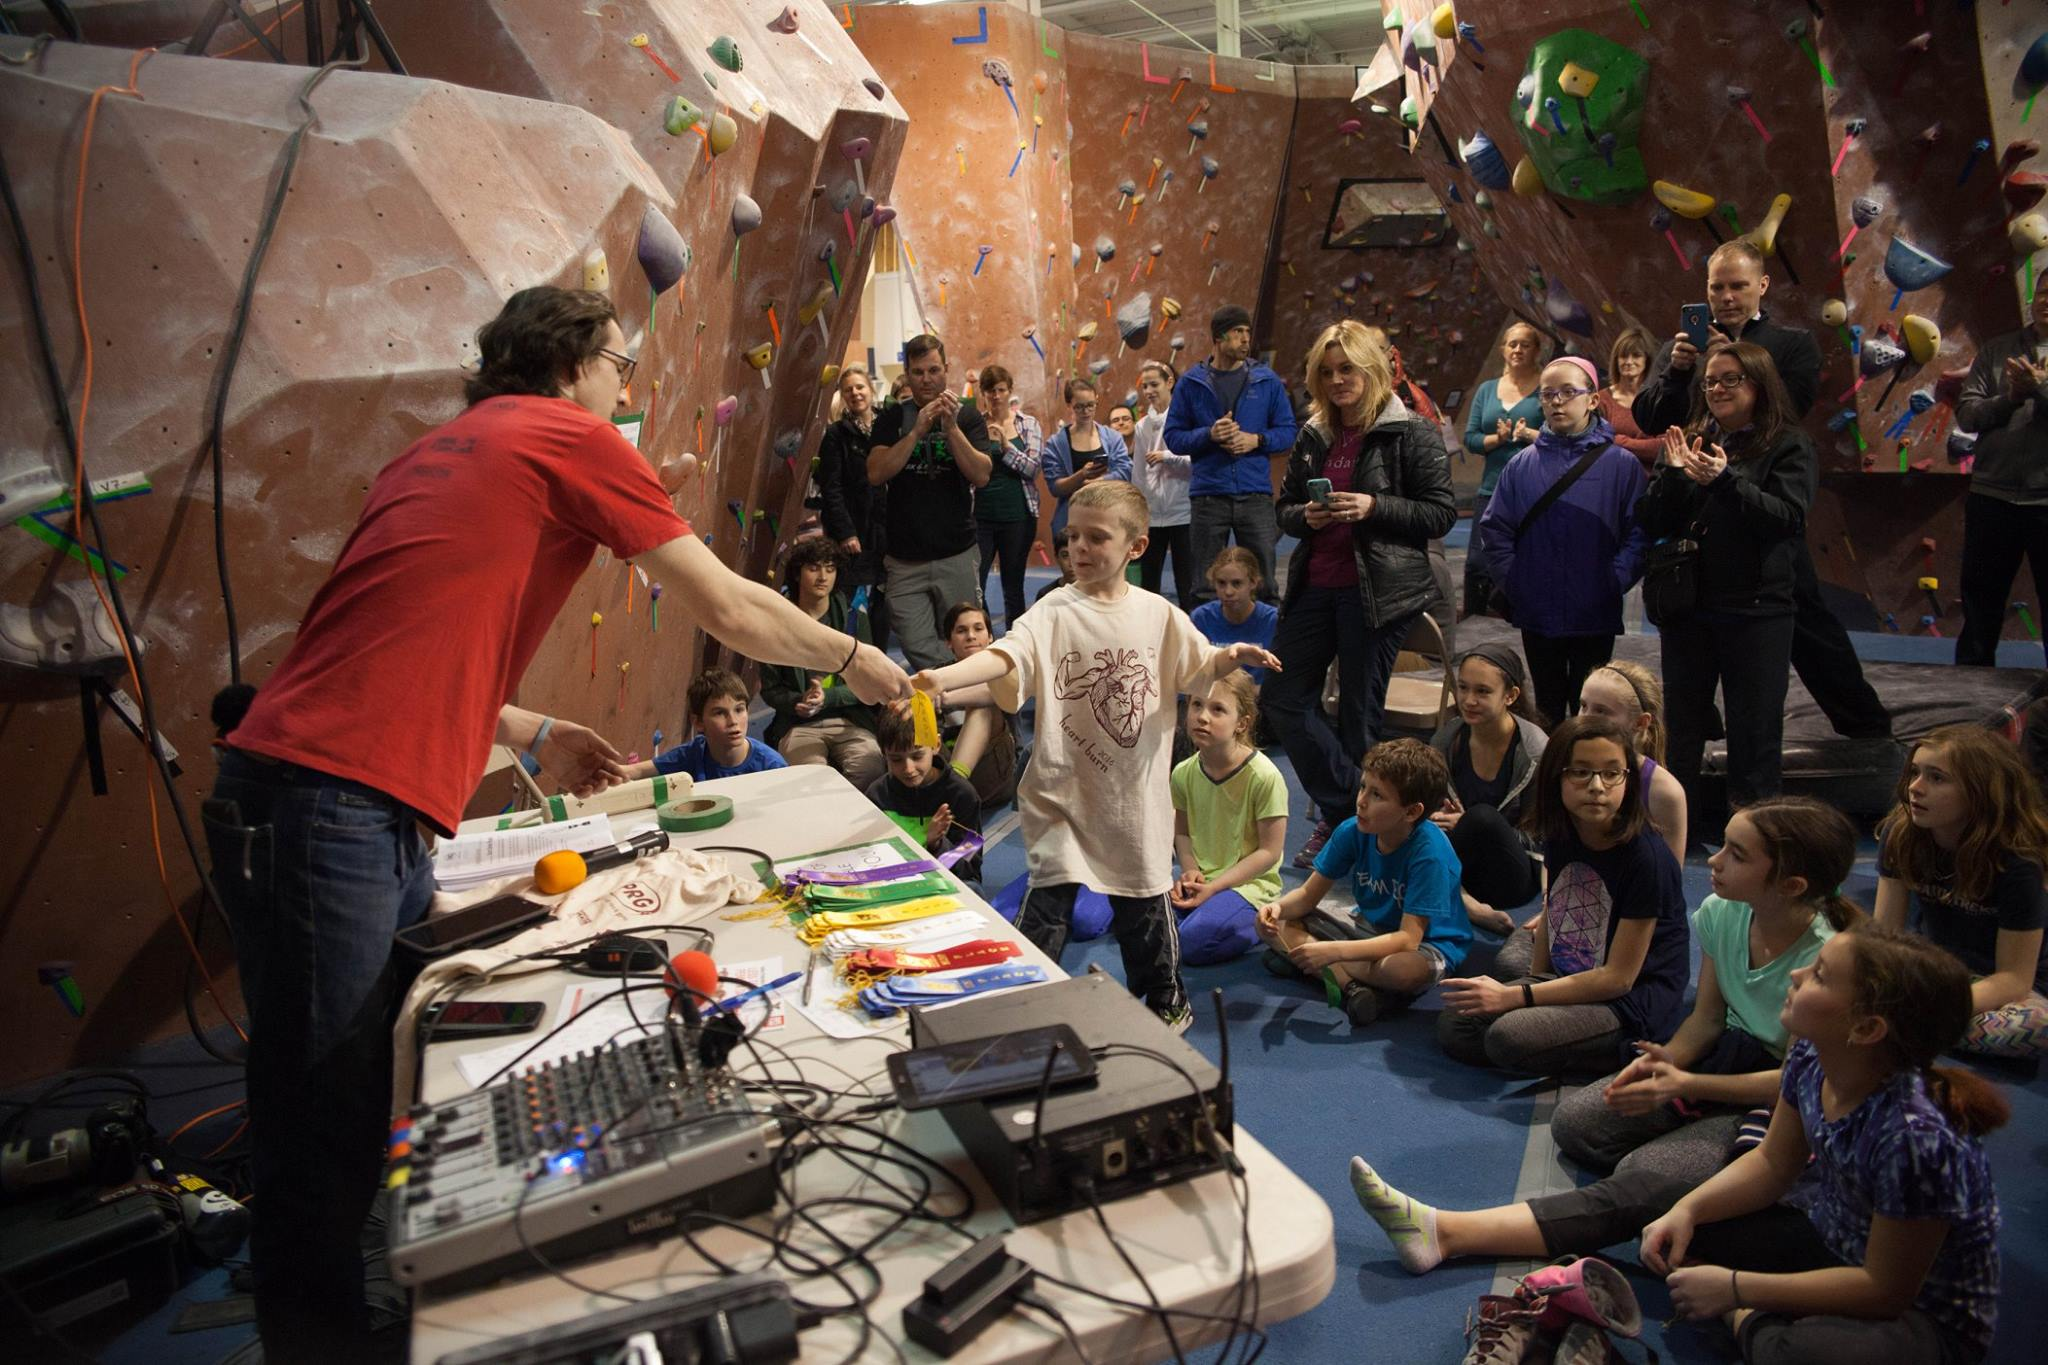 Images taken by Philadelphia Rock Gyms